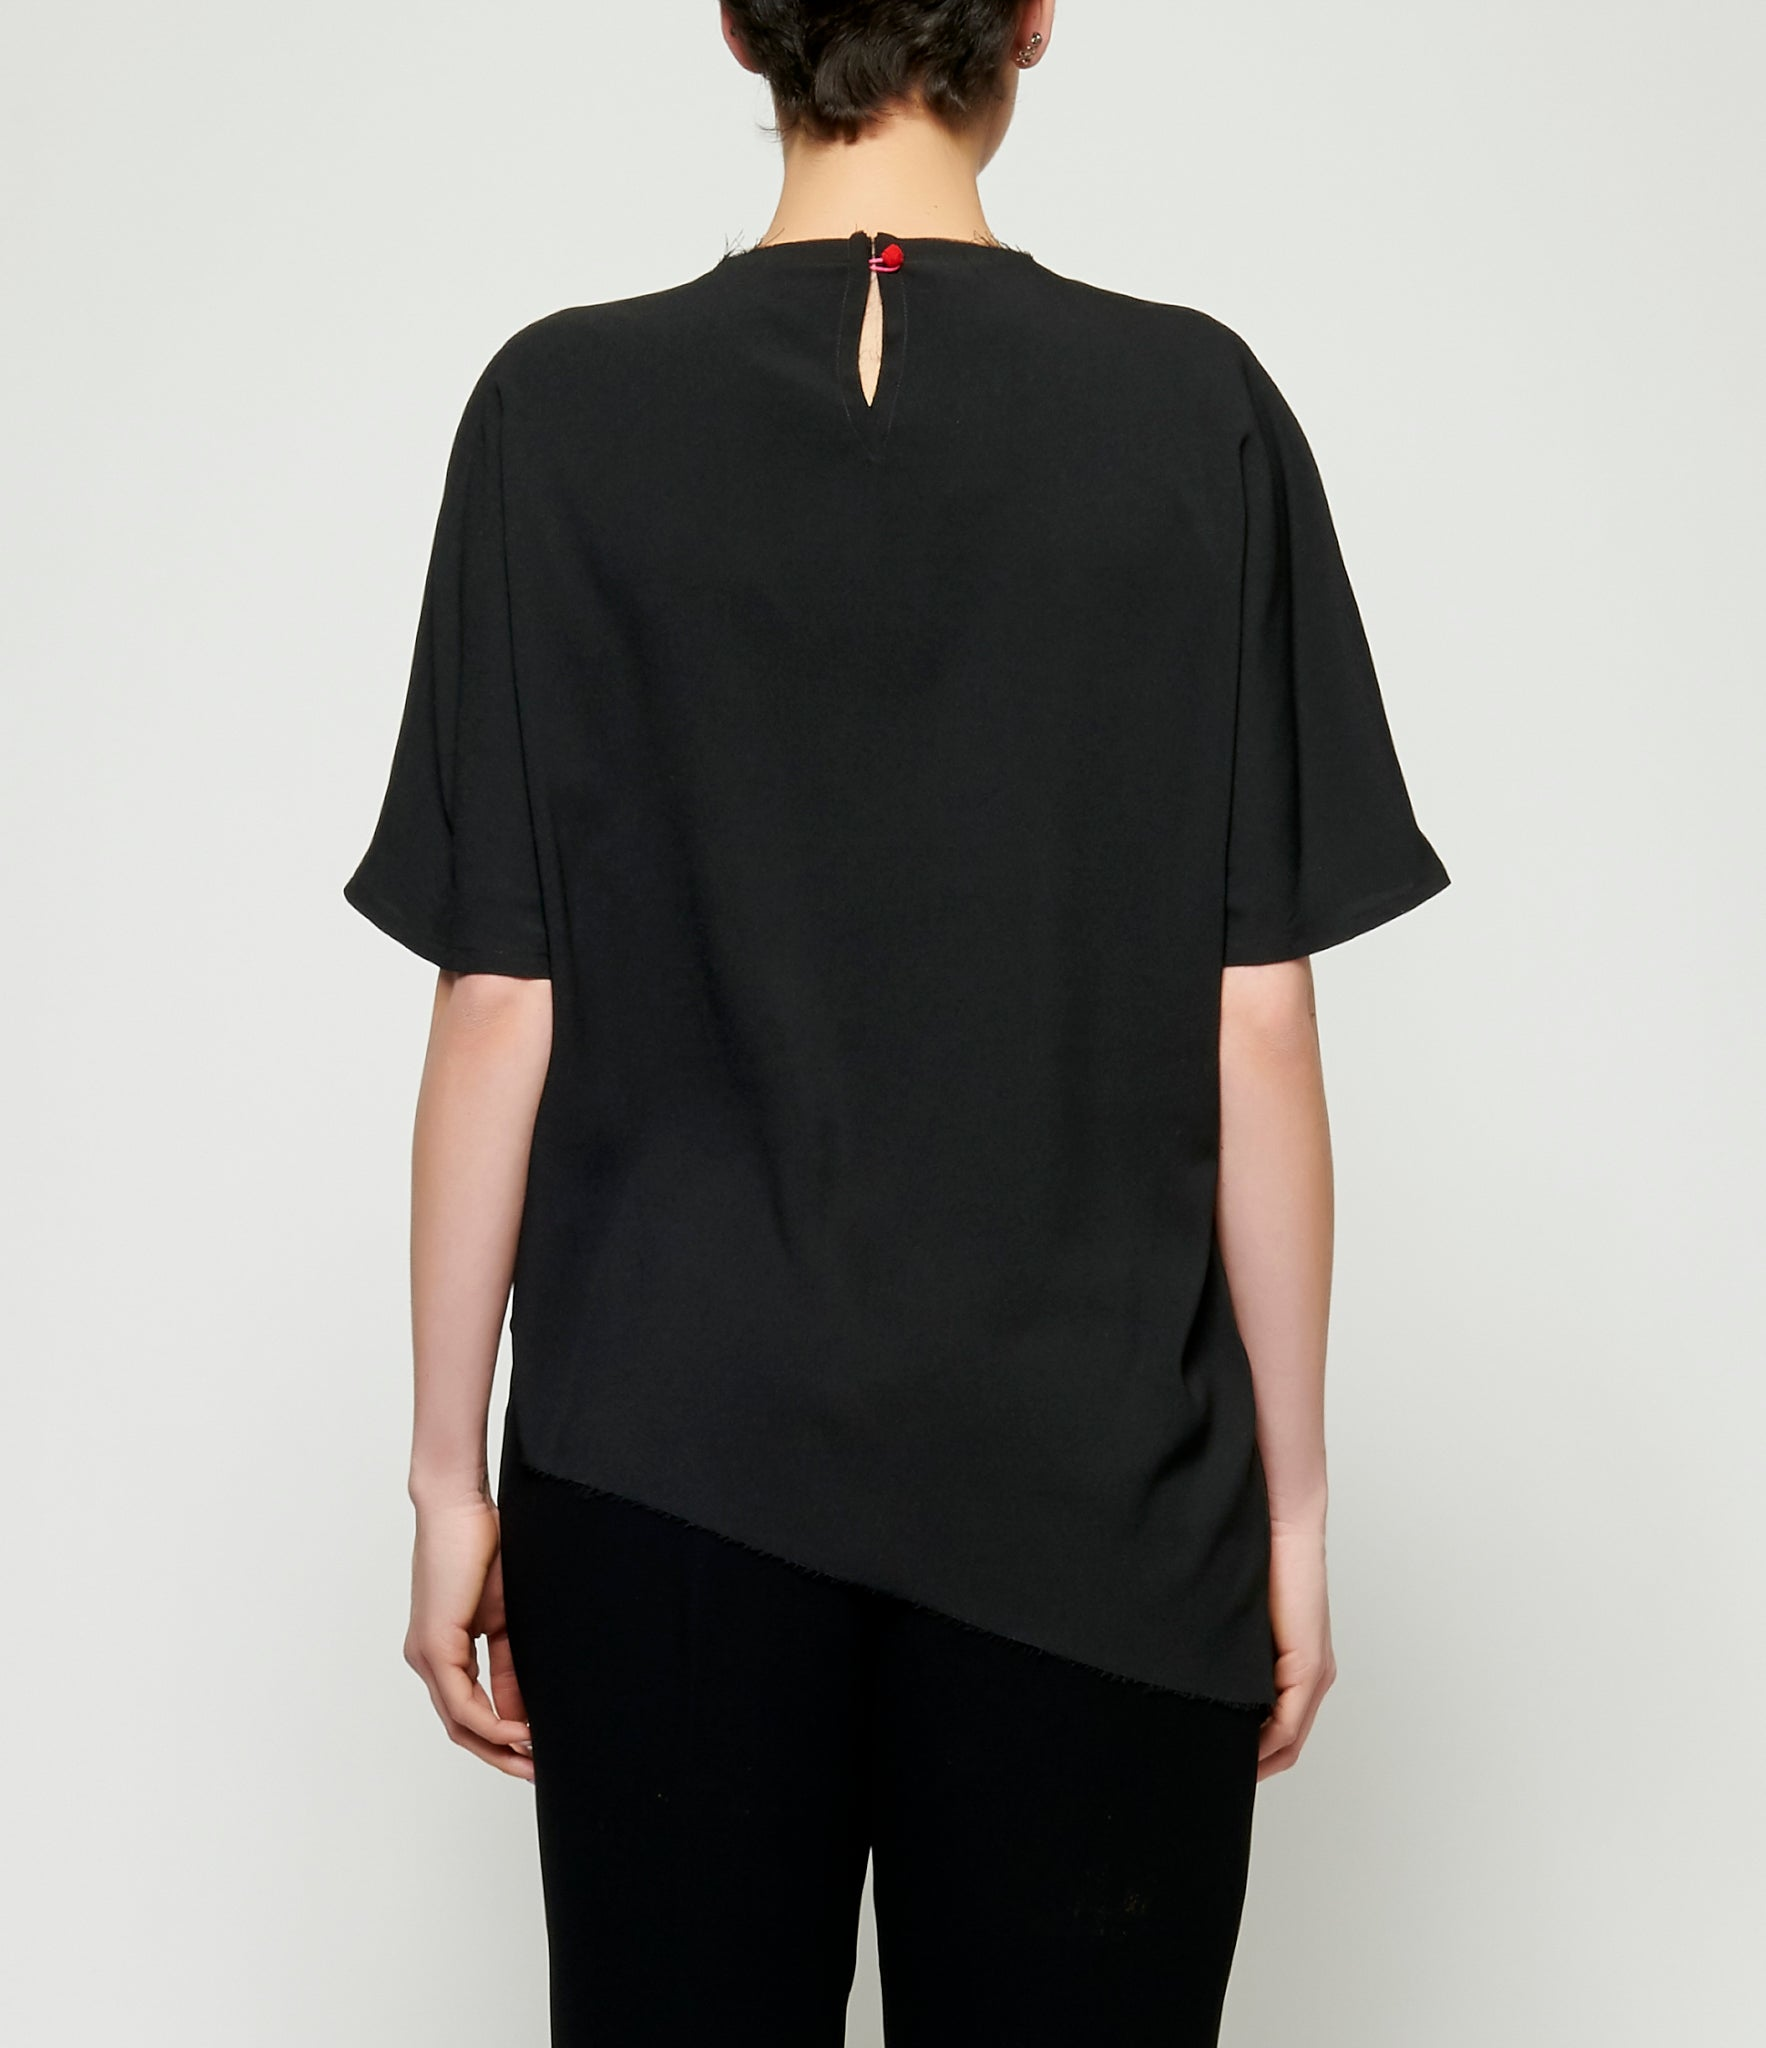 Replika Black Crossover Top